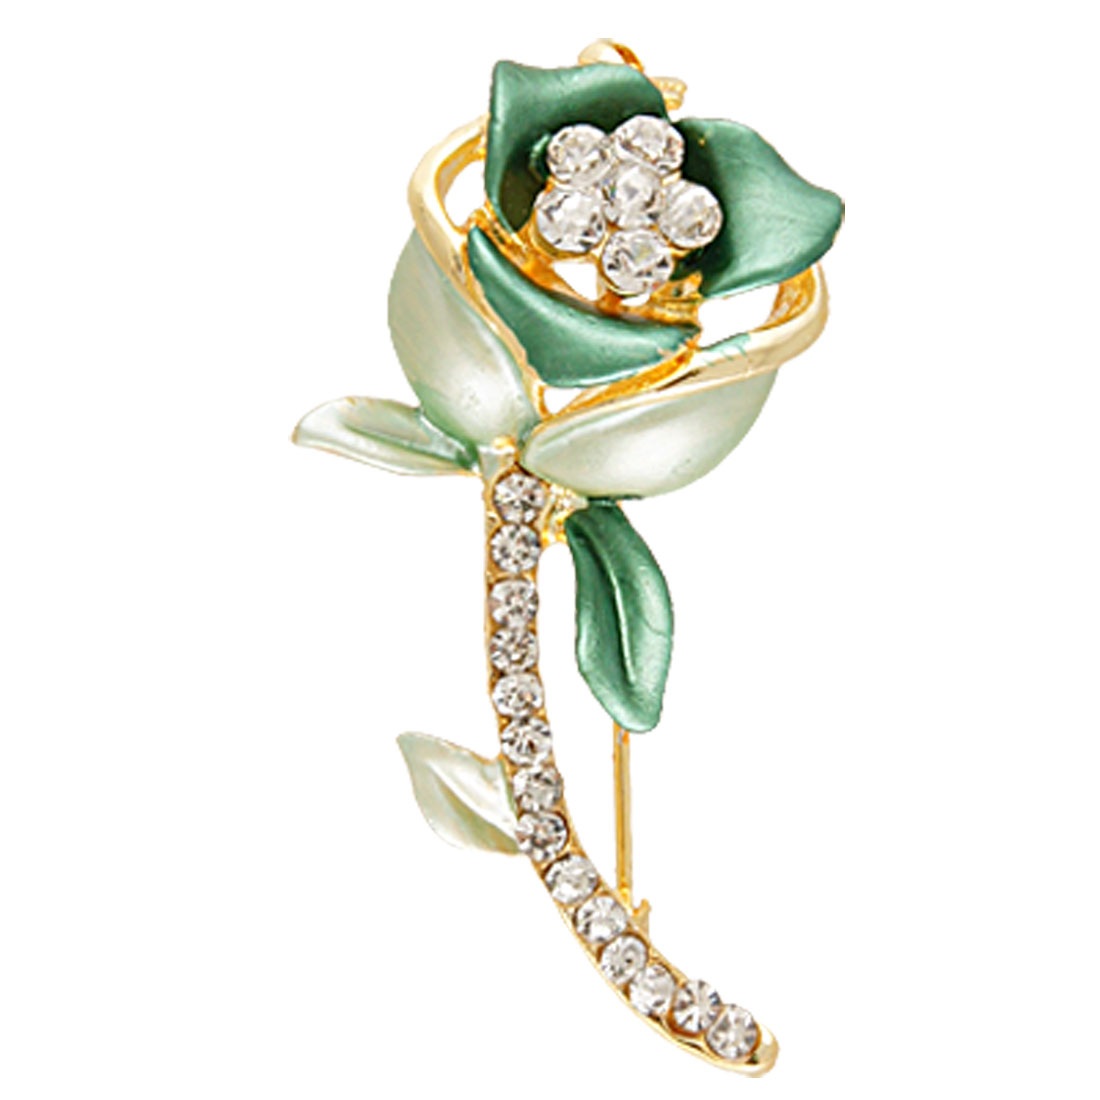 Glittery Rhinestone Accent Green Rose Floral Breastpin for Lady